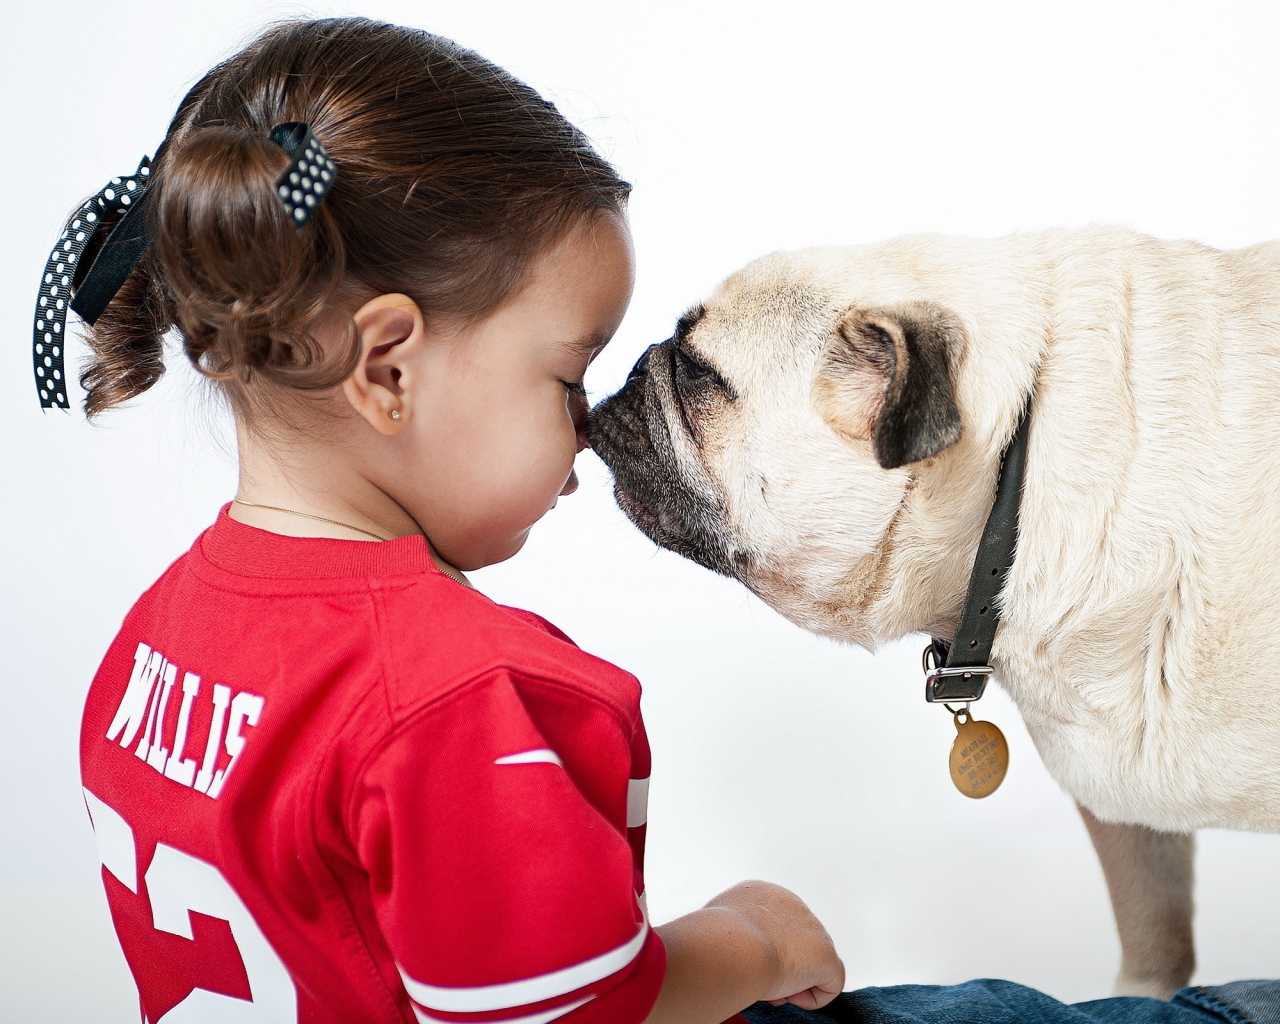 girl_bulldog_play_friendship_59868_1280x1024